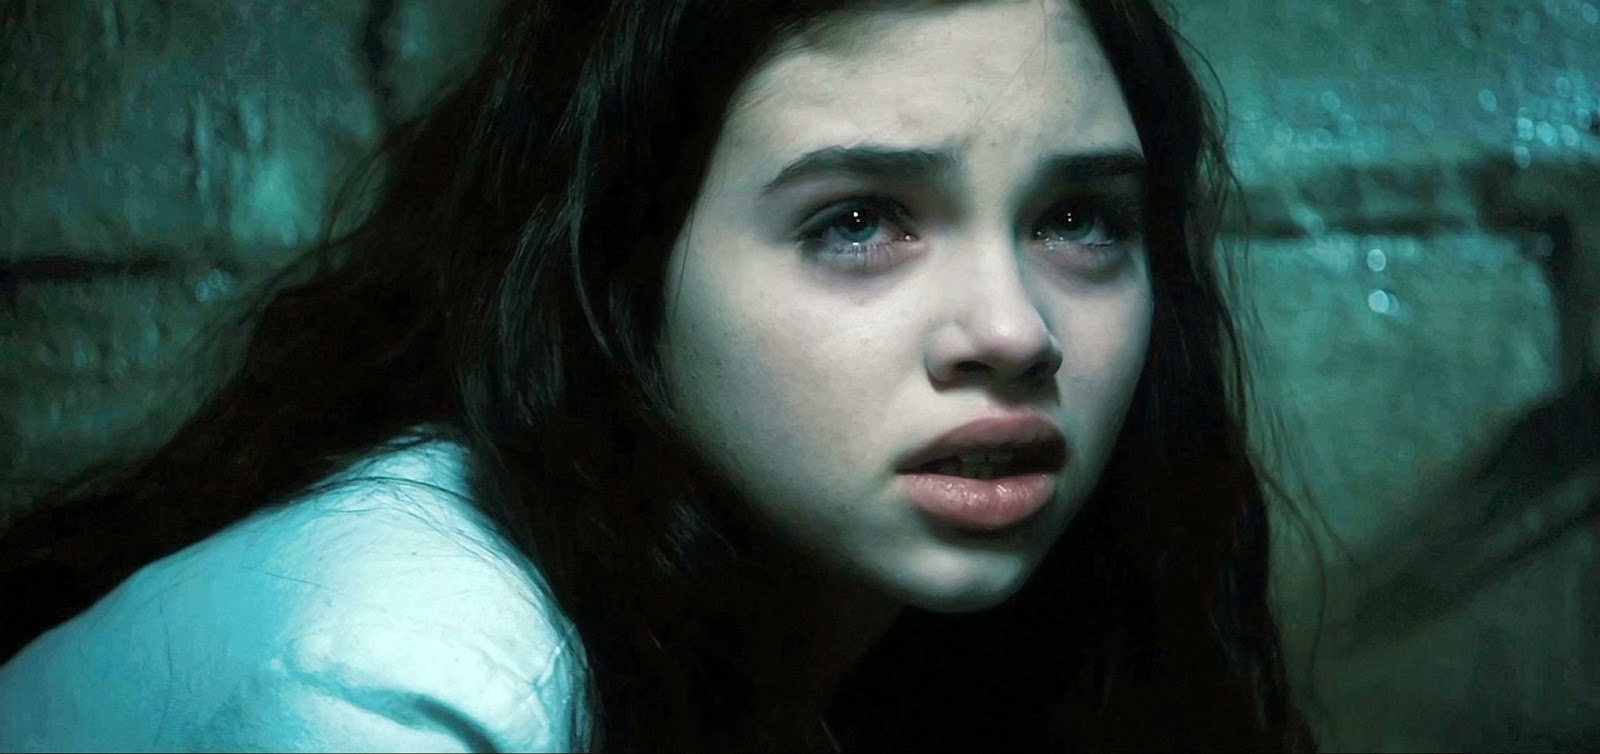 Underworld Awakening:  India Eisley as Eve | A Constantly Racing Mind